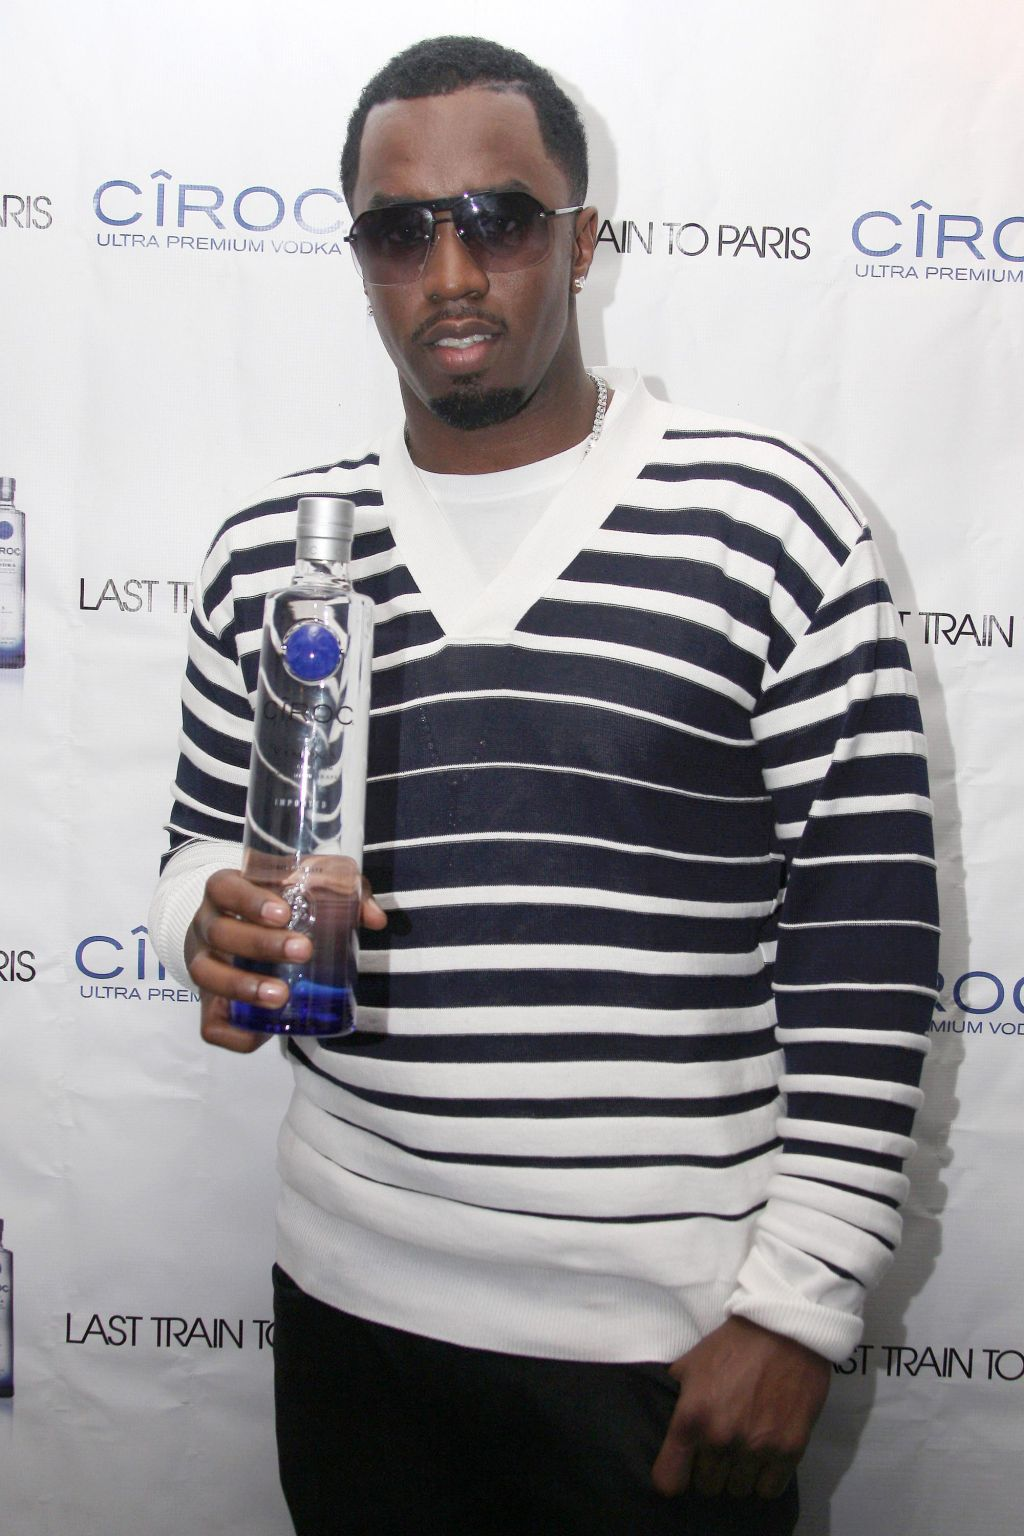 Diddy And Ciroc Vodka Tour Stops At Fontainebleau Miami